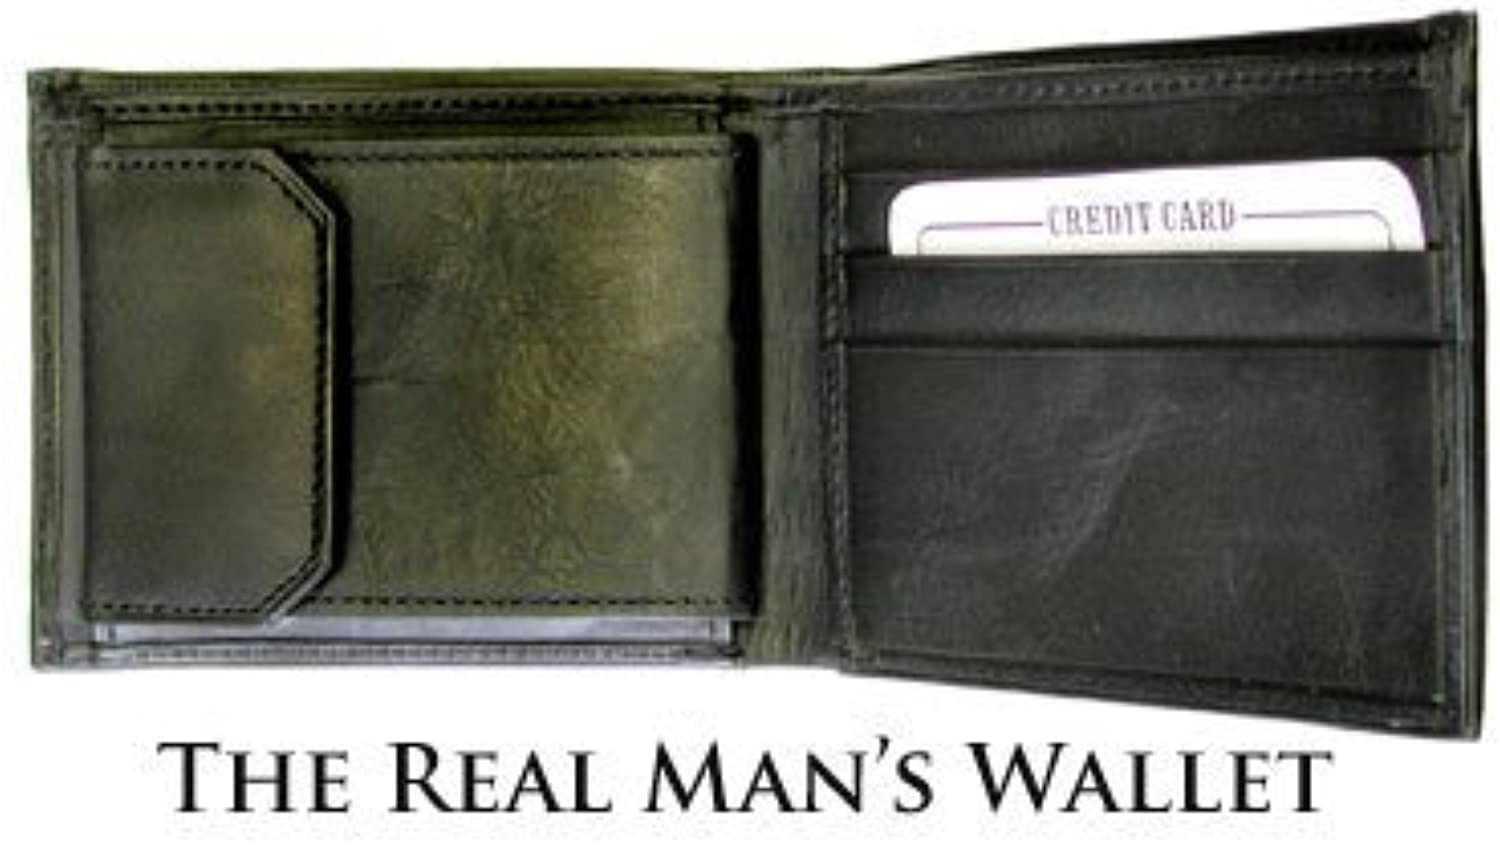 Real Man's Wallet by Murphys Magic Supplies Inc.